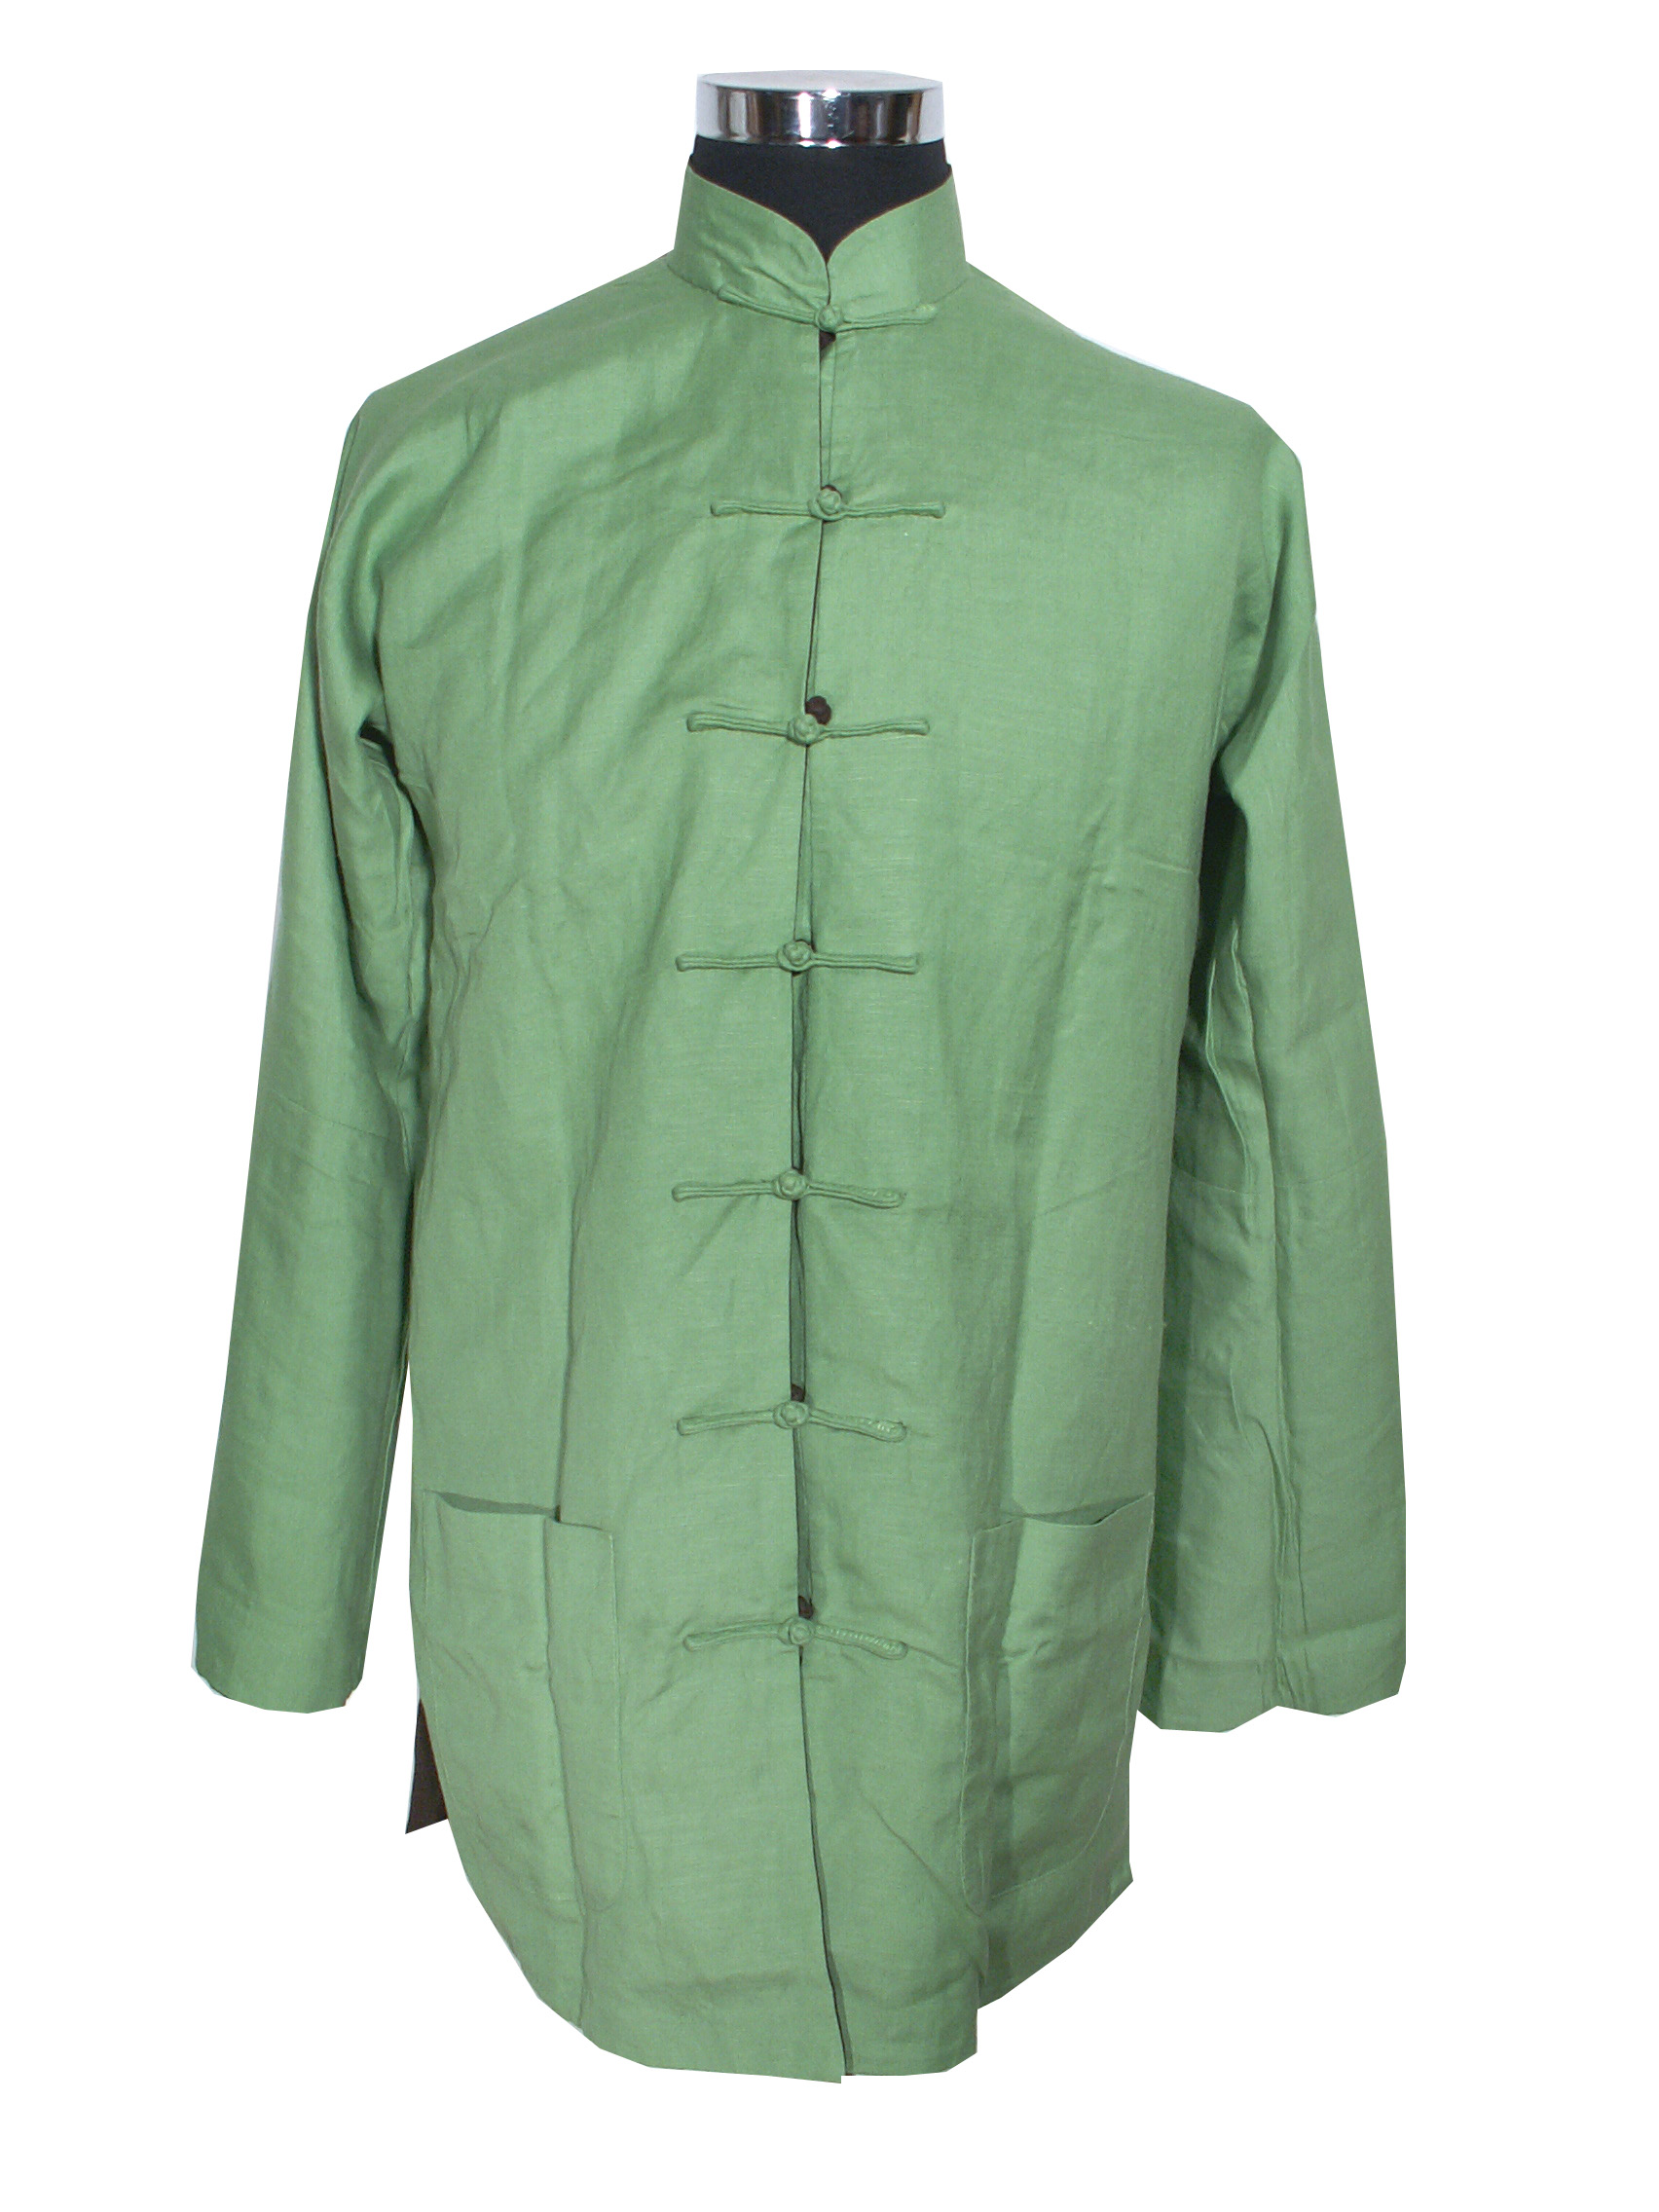 Bargain Item - Chinese Kung-Fu Reversible Jacket